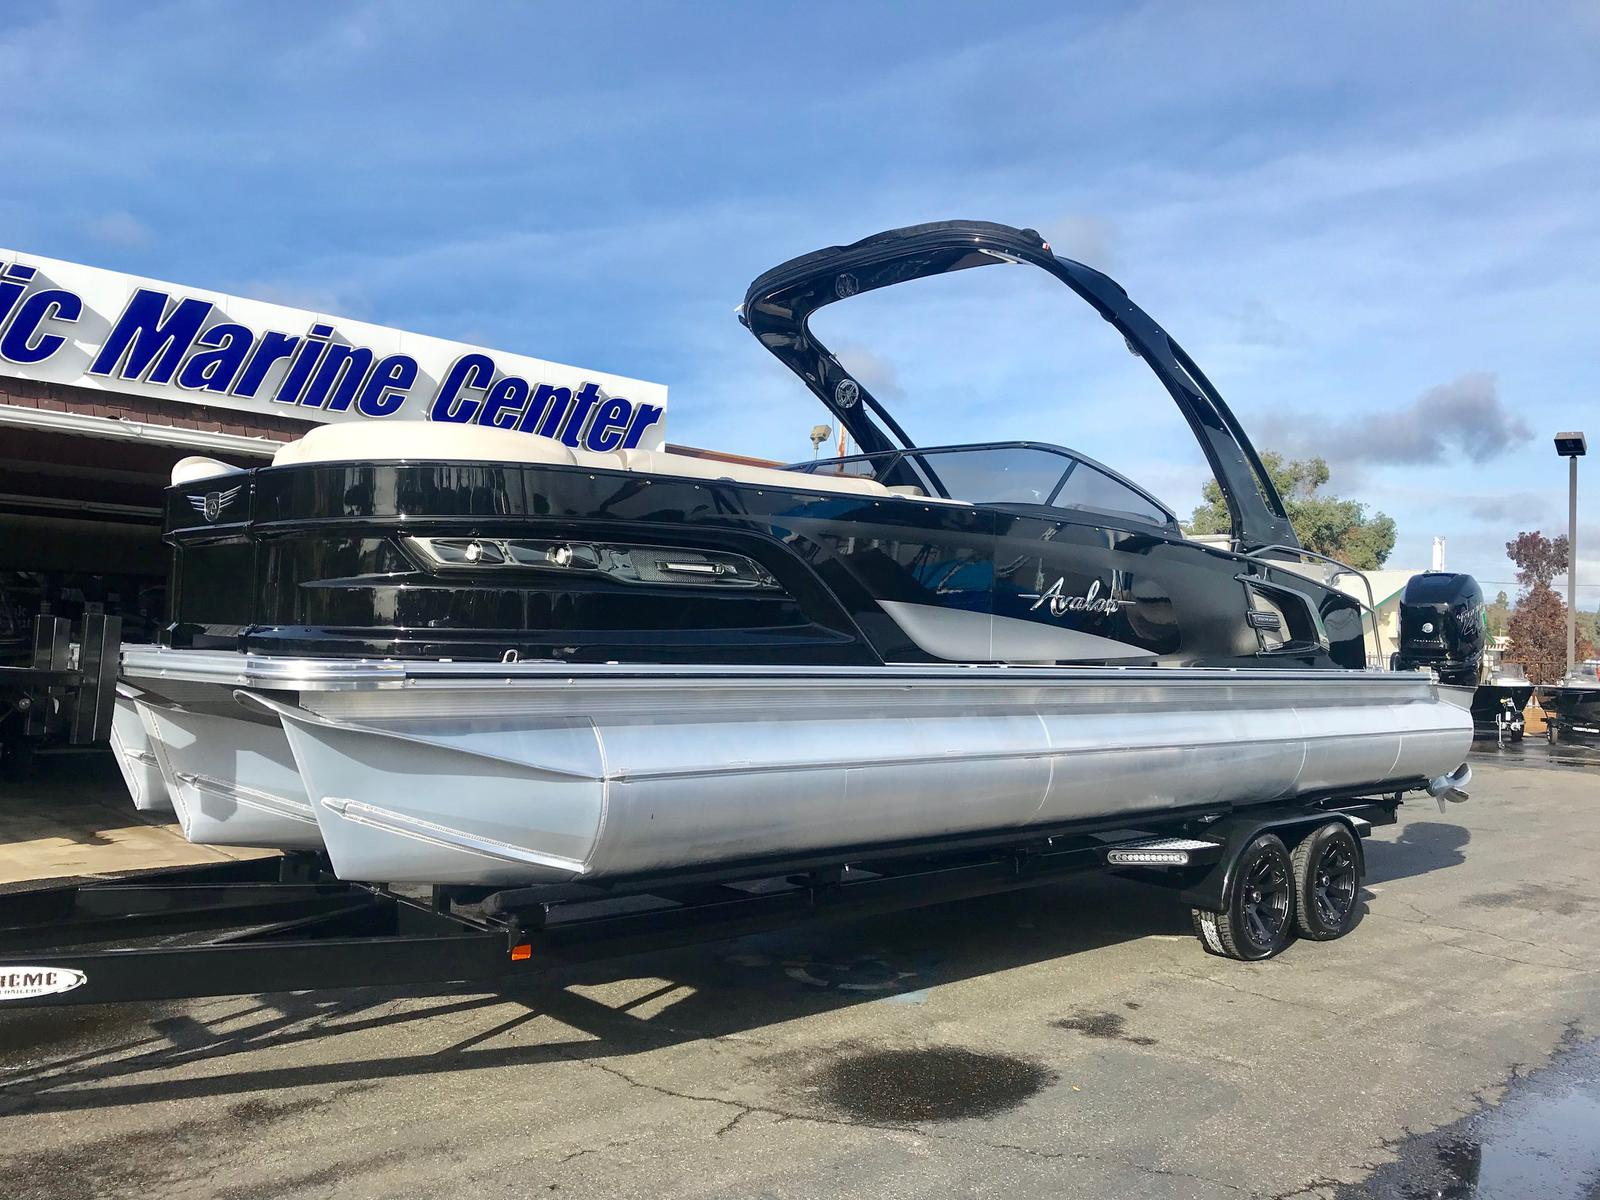 Avalon Excalibur Elite Windshield 27' Twin 400 Hp engines